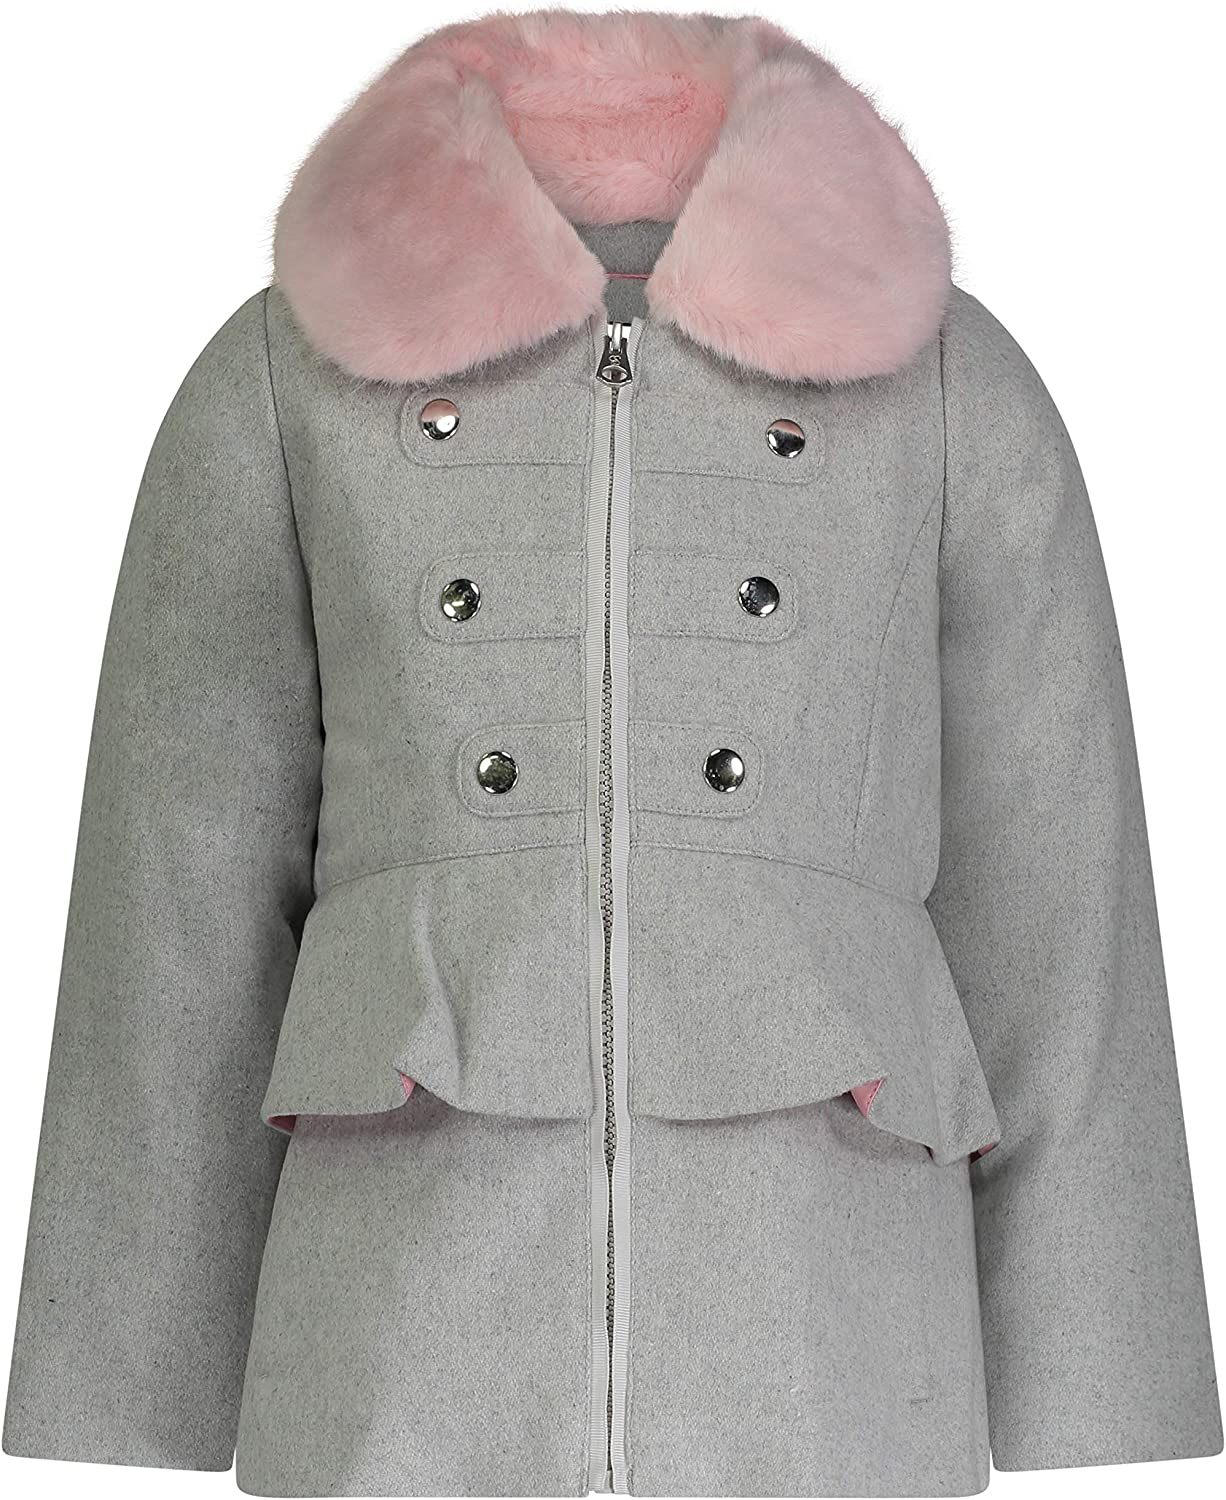 Jessica Clearance SALE Tucson Mall Limited time Simpson Girls' Dress Coat Collar Cozy with Jacket